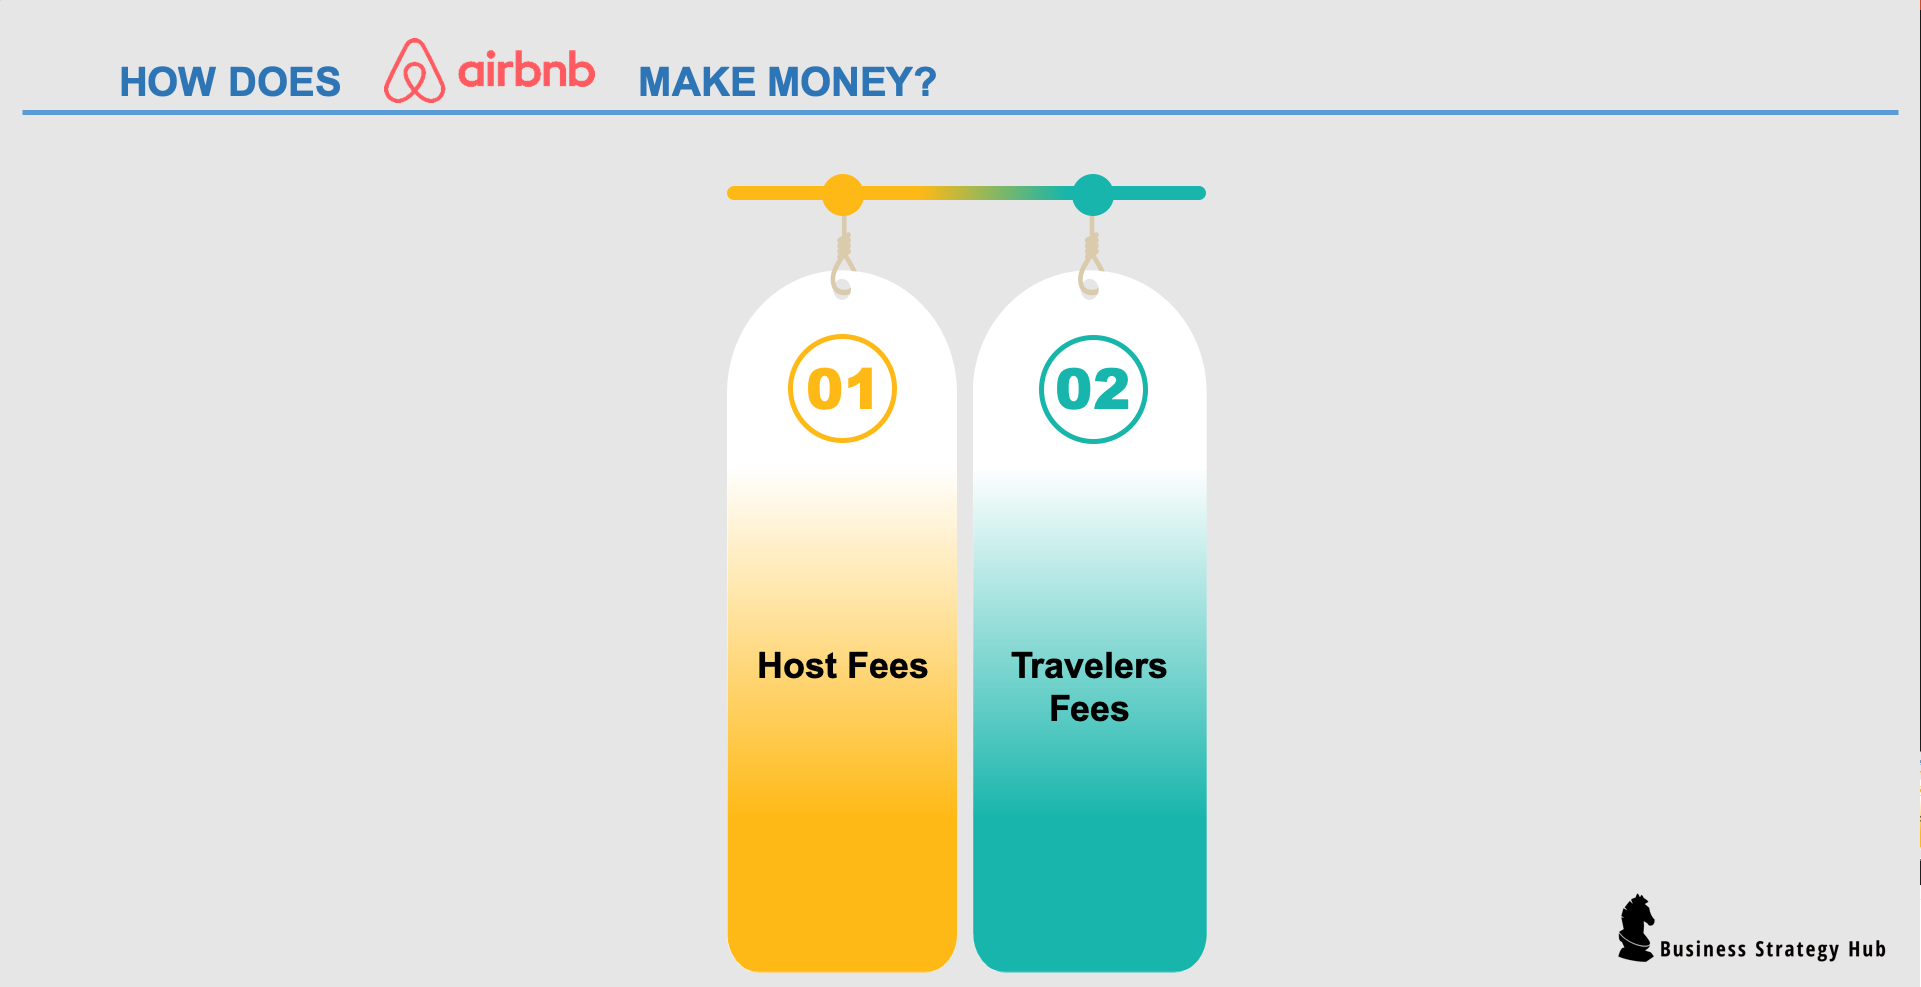 Airbnb Business Model | How does Airbnb make money